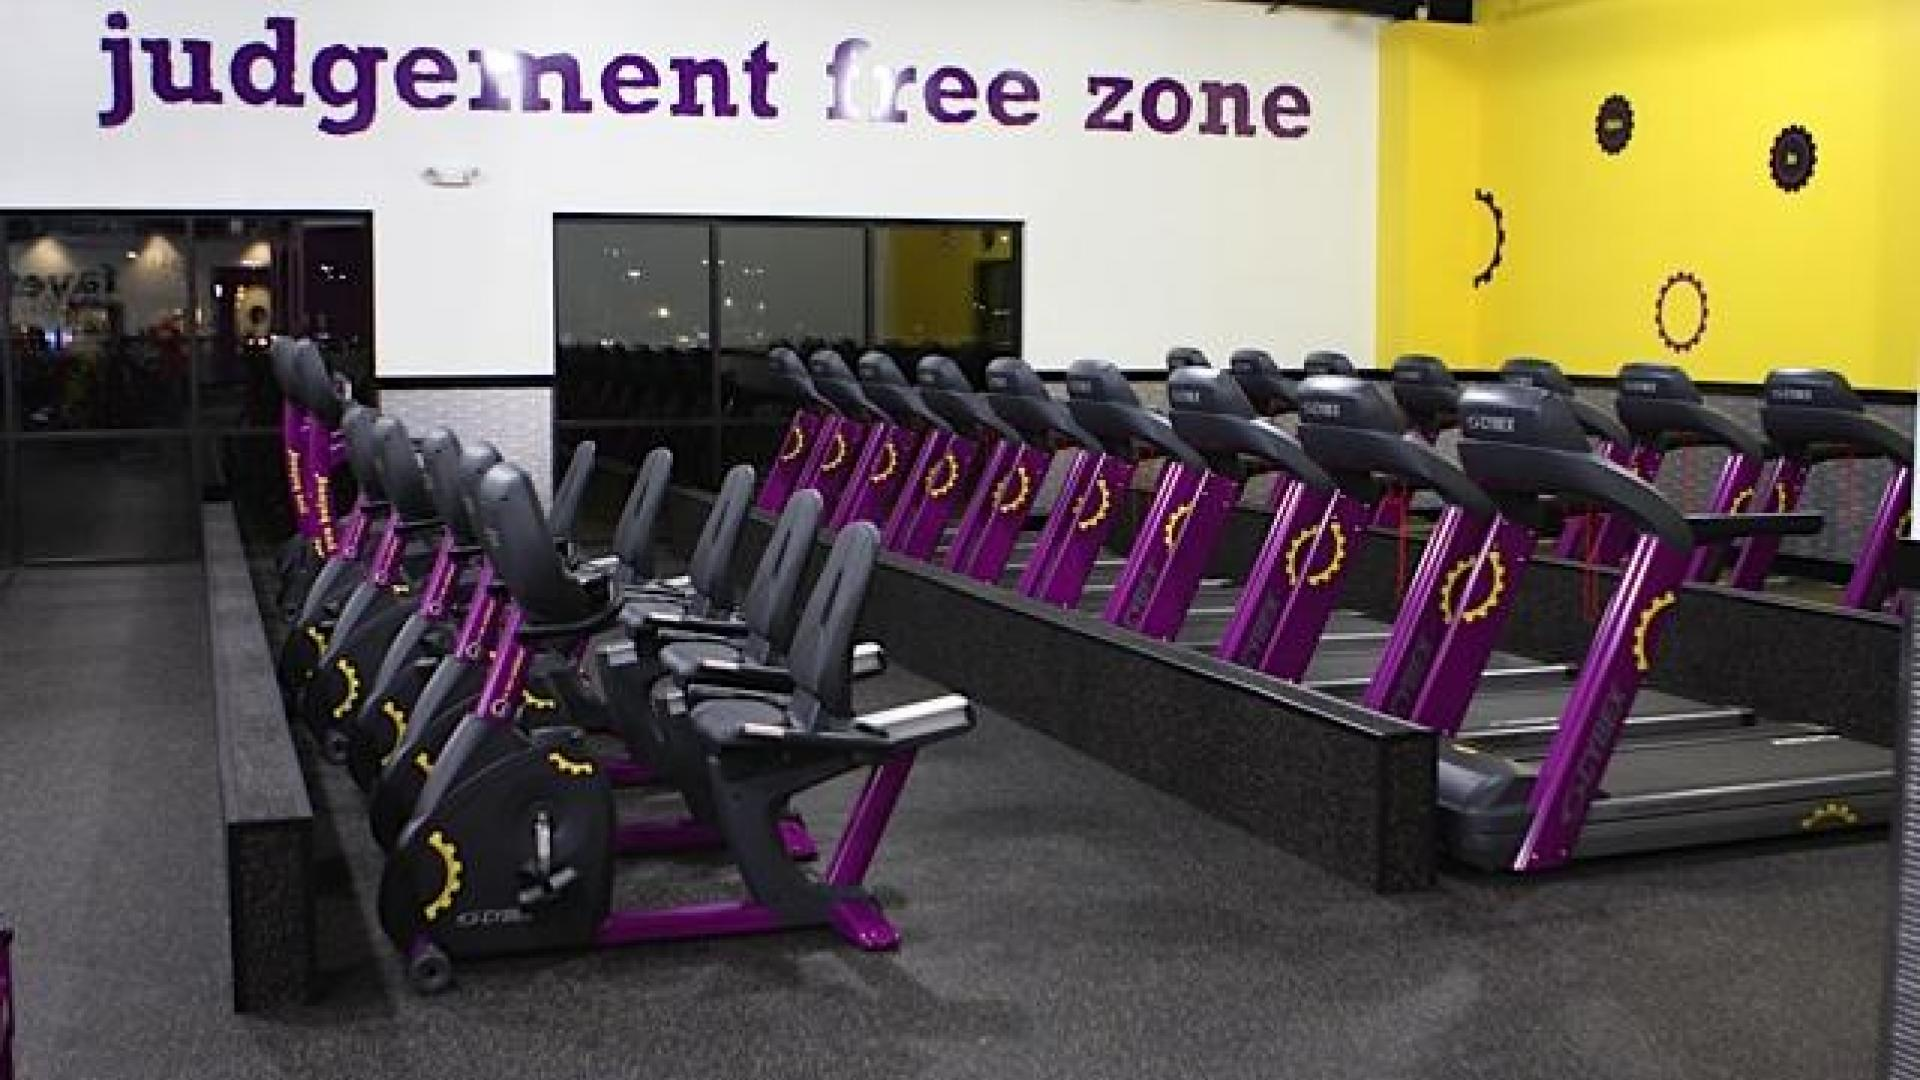 Fayetteville West Ar Planet Fitness - Year of Clean Water